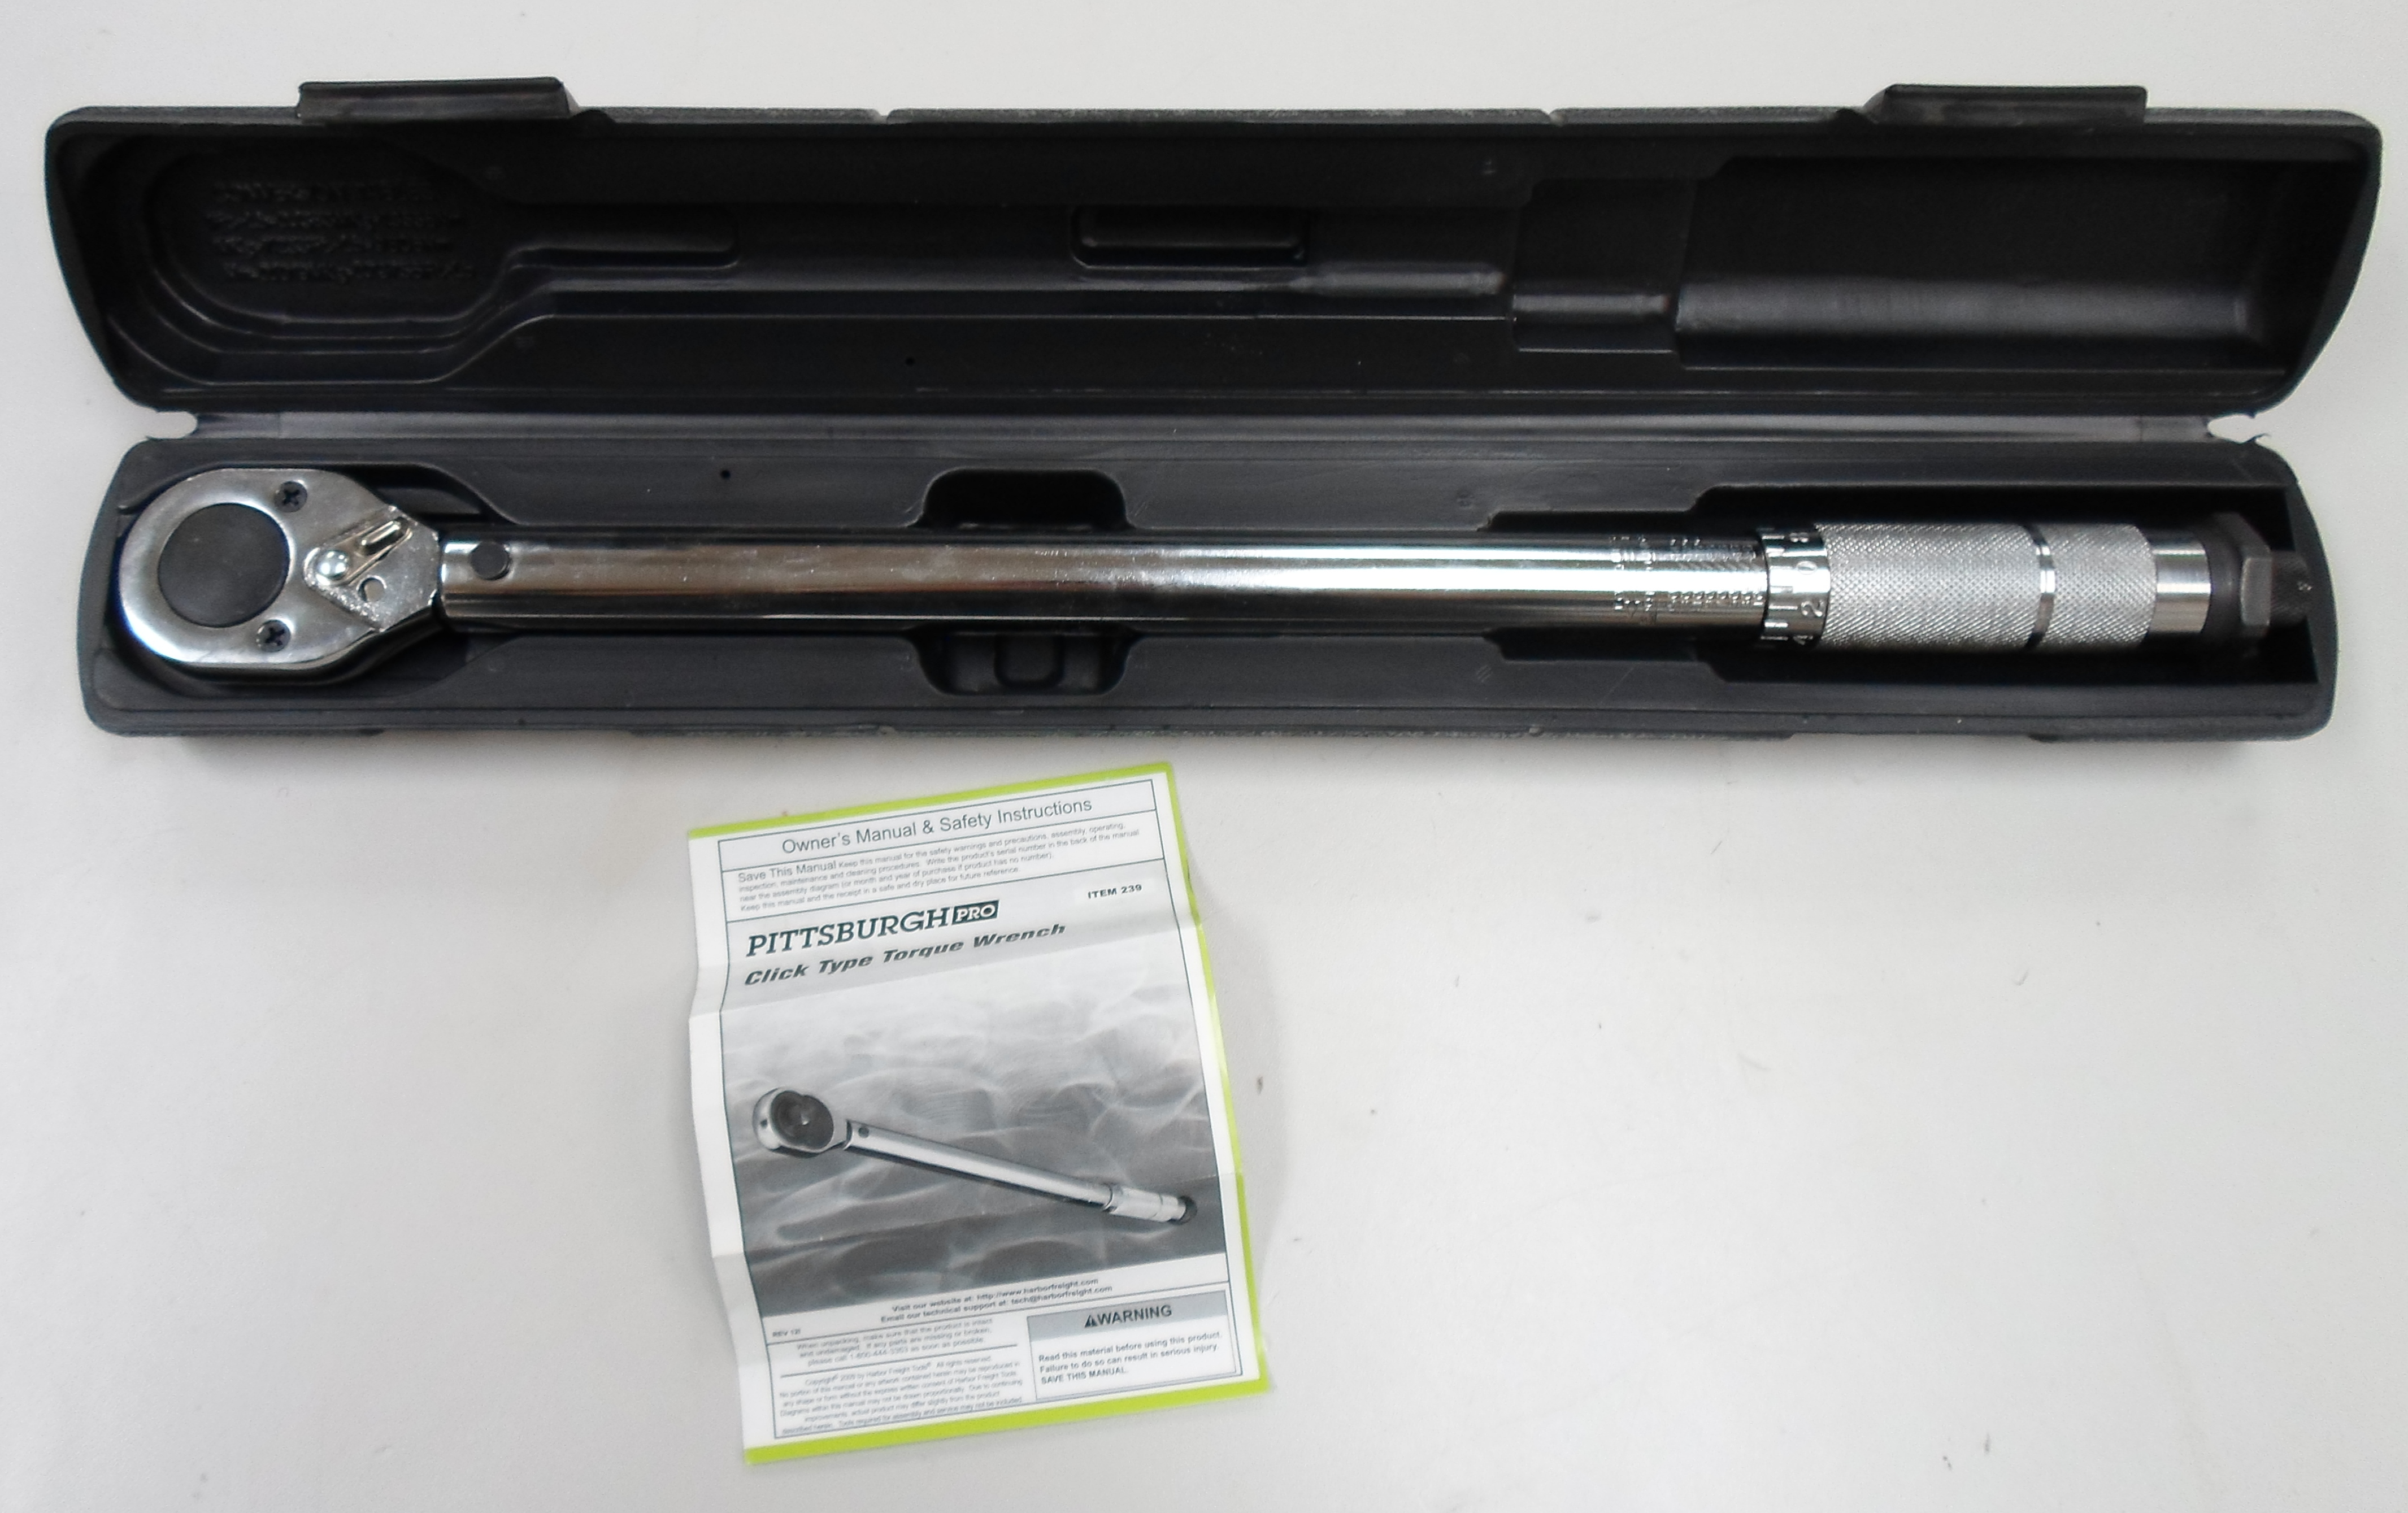 PITTSBURG - CLICK TYPE  - TORQUE WRENCH